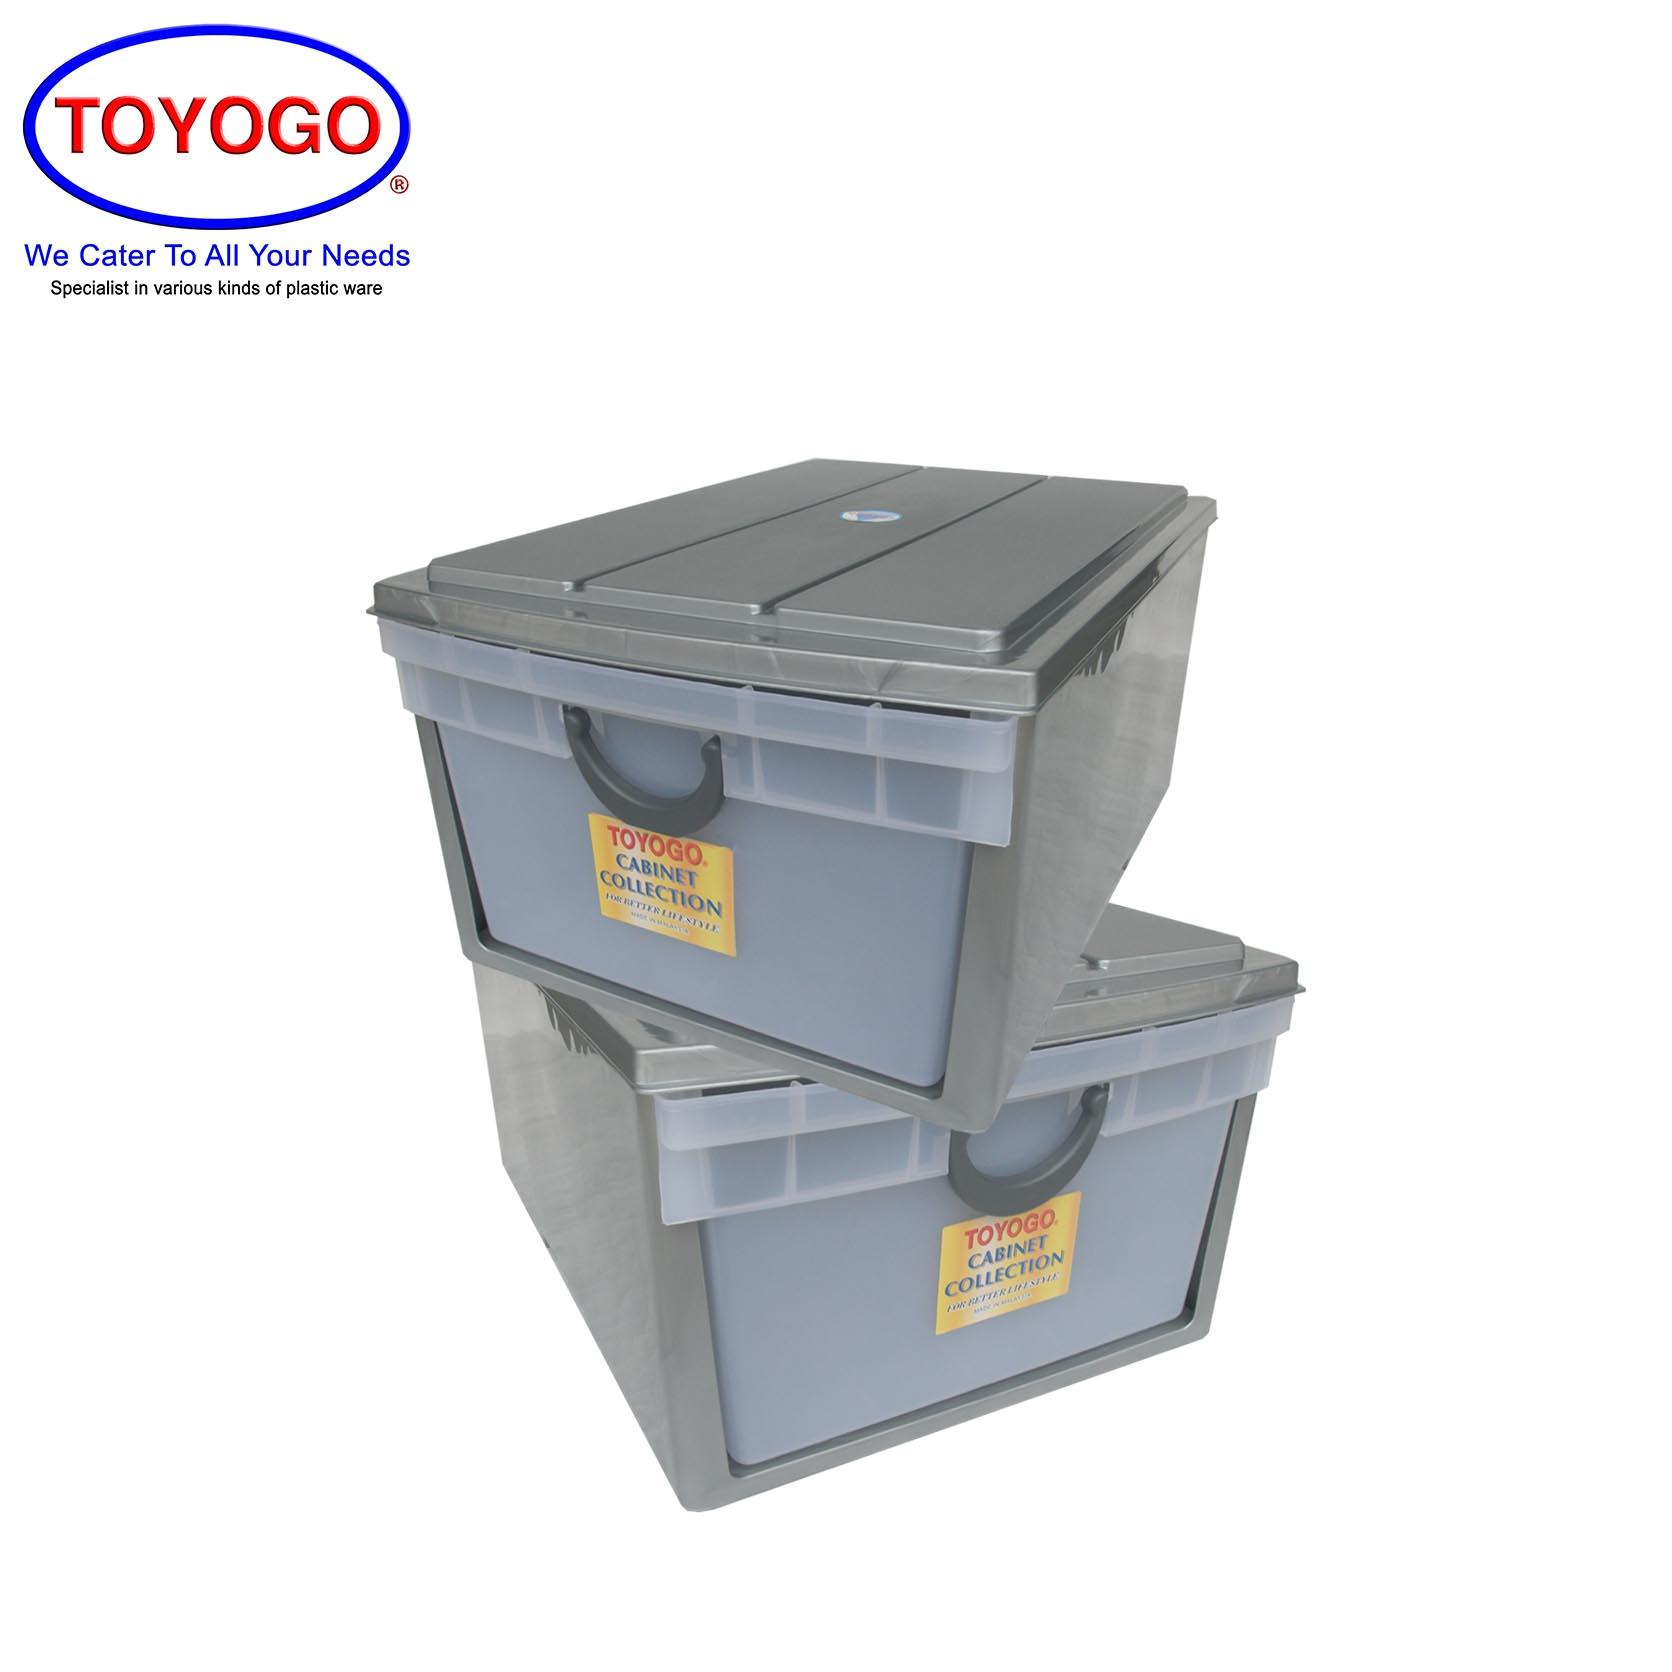 Toyogo Plastic Single Storage Cabinet / Drawer (Bundle of 2) (703)